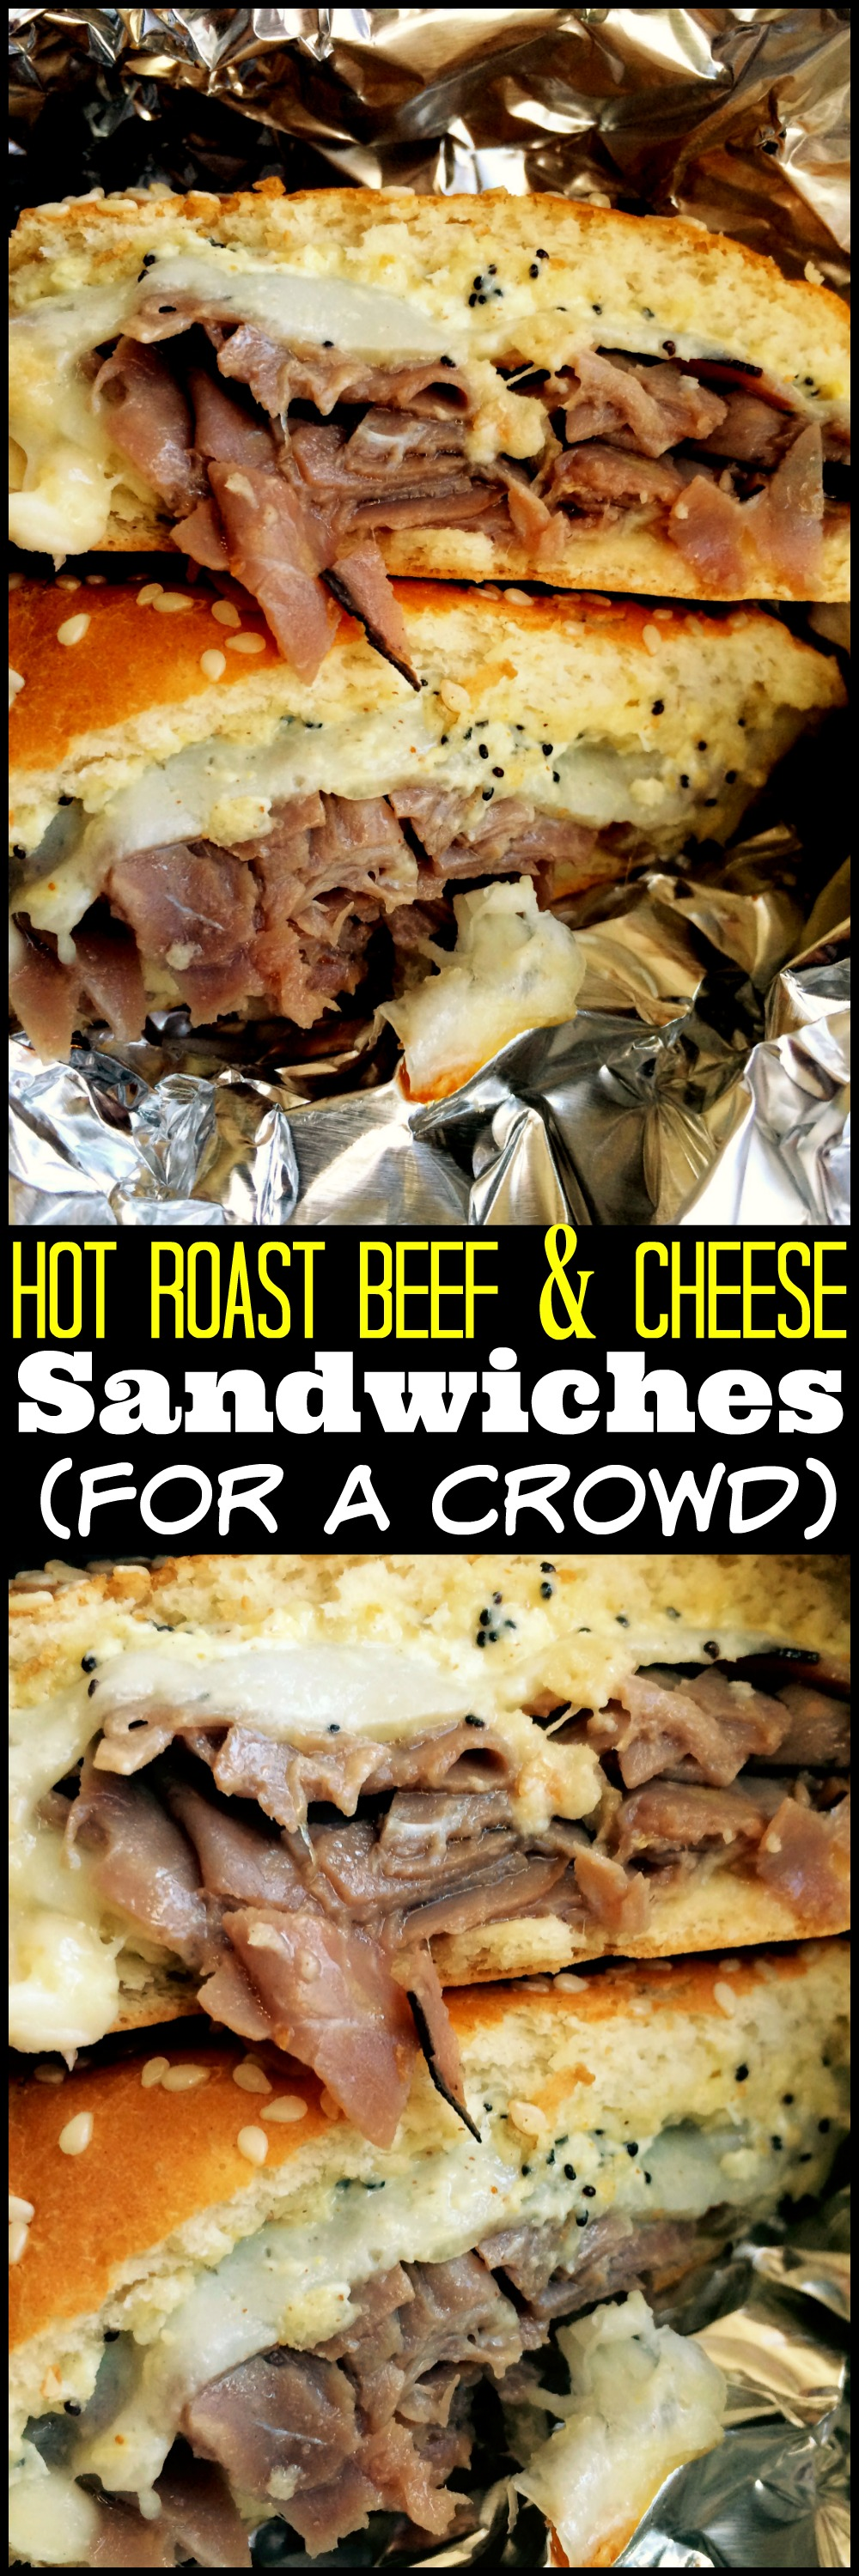 Hot roast beef cheese sandwiches for a crowd aunt bees recipes hot roast beef cheese sandwiches for a crowd aunt bees recipes forumfinder Images